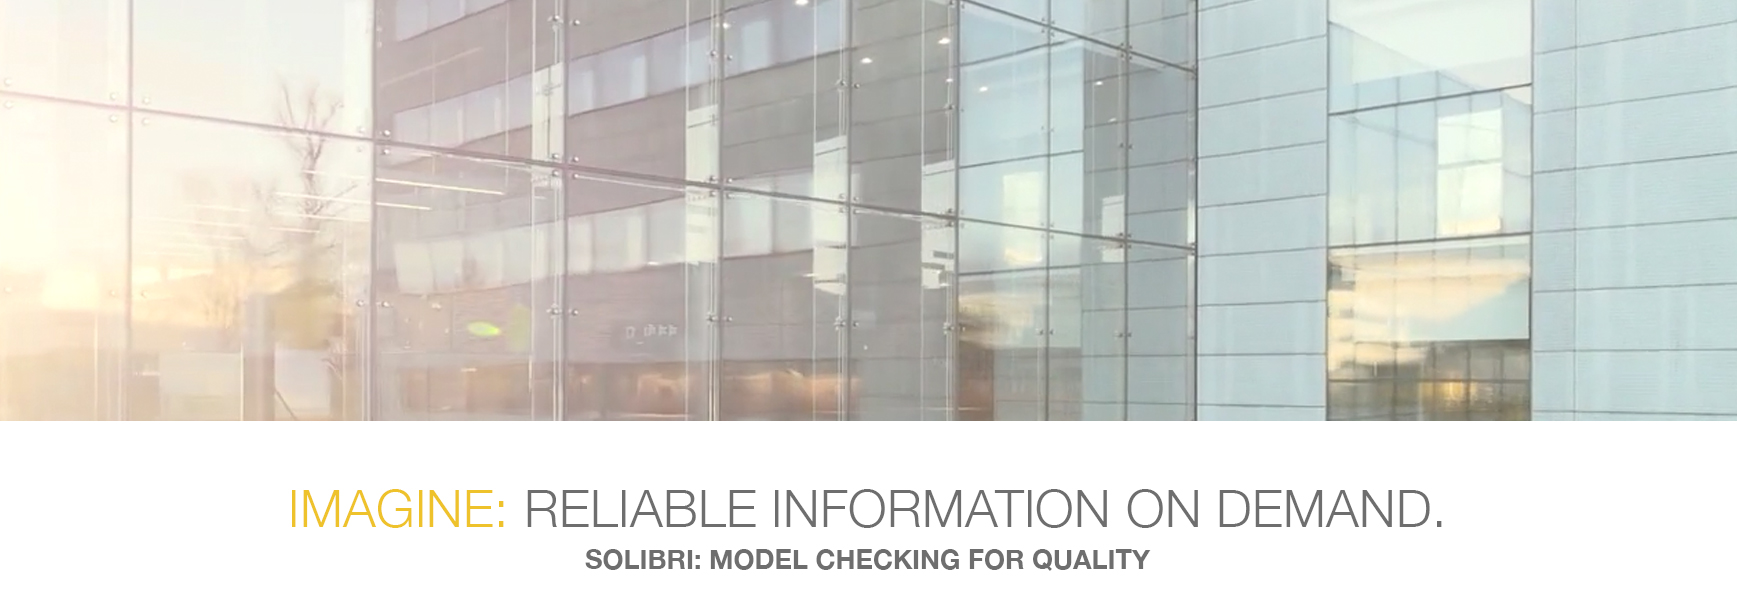 Solibri: Model Checking for Quality